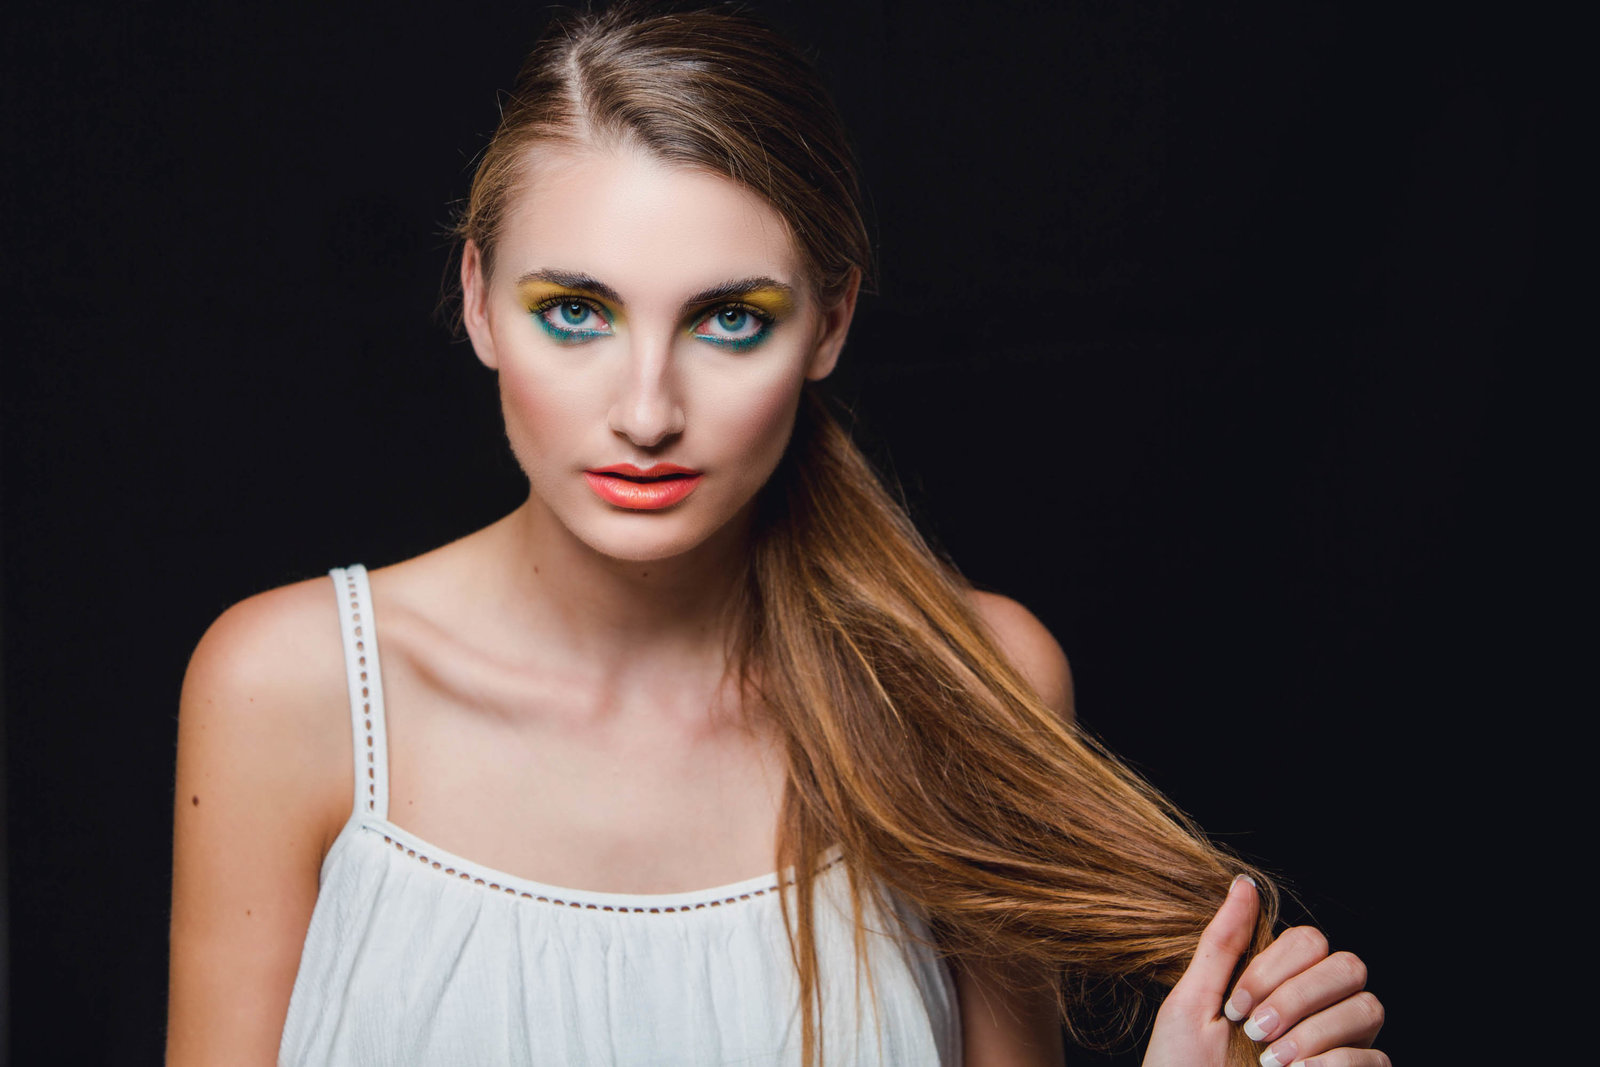 beauty-spring-studio-editorial-fashion-photography-kate-timbers-charleston-sc-rebekah-marts509